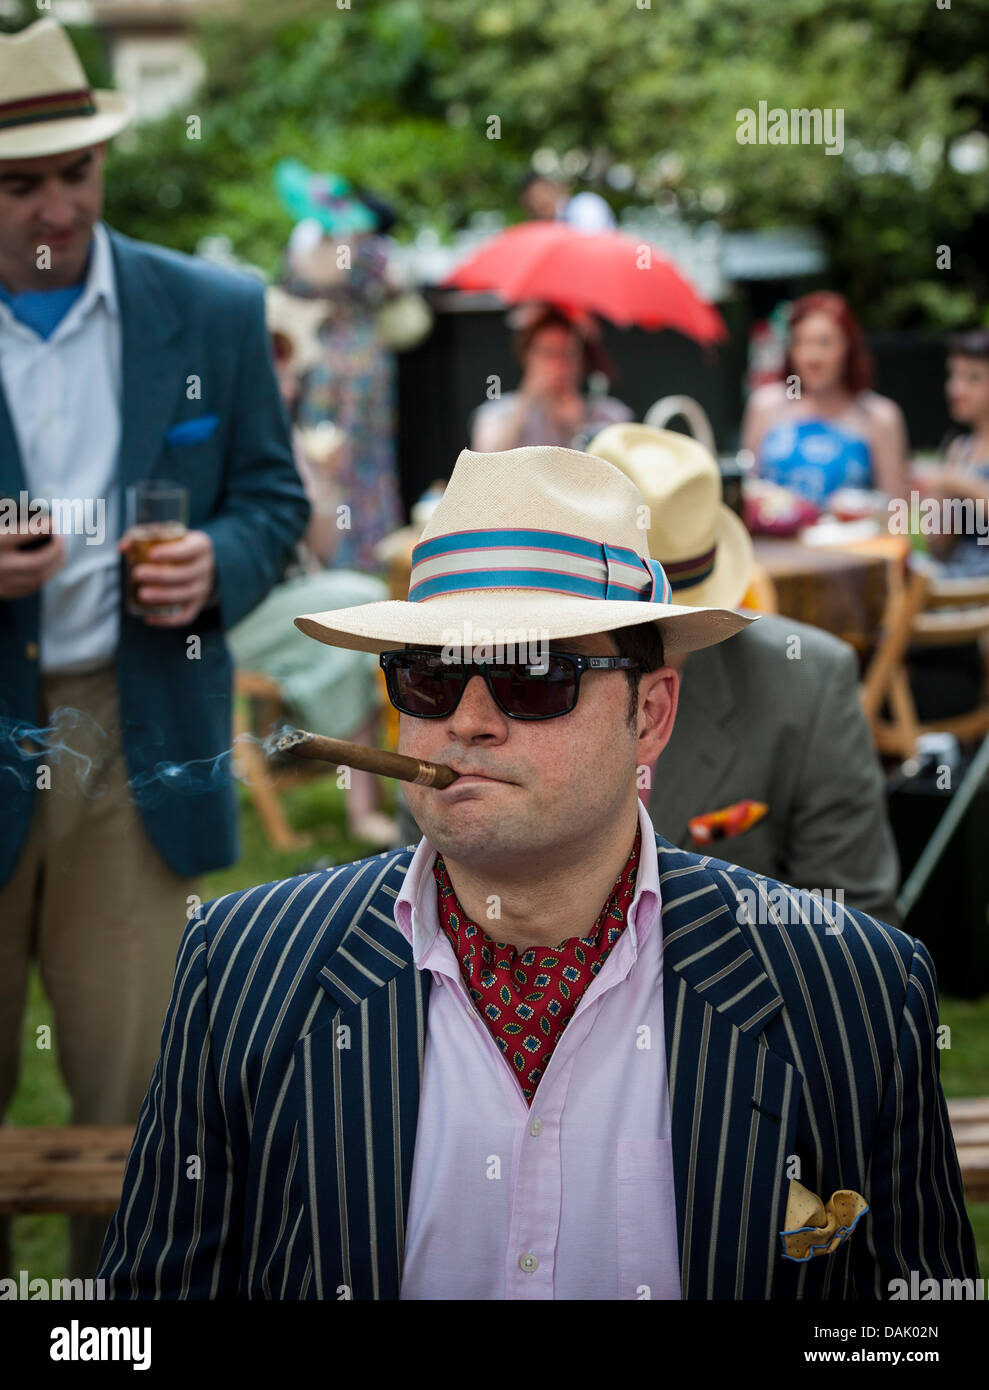 A chap attending the annual Chaps Olympiad in Bedford Square Gardens in London. - Stock Image